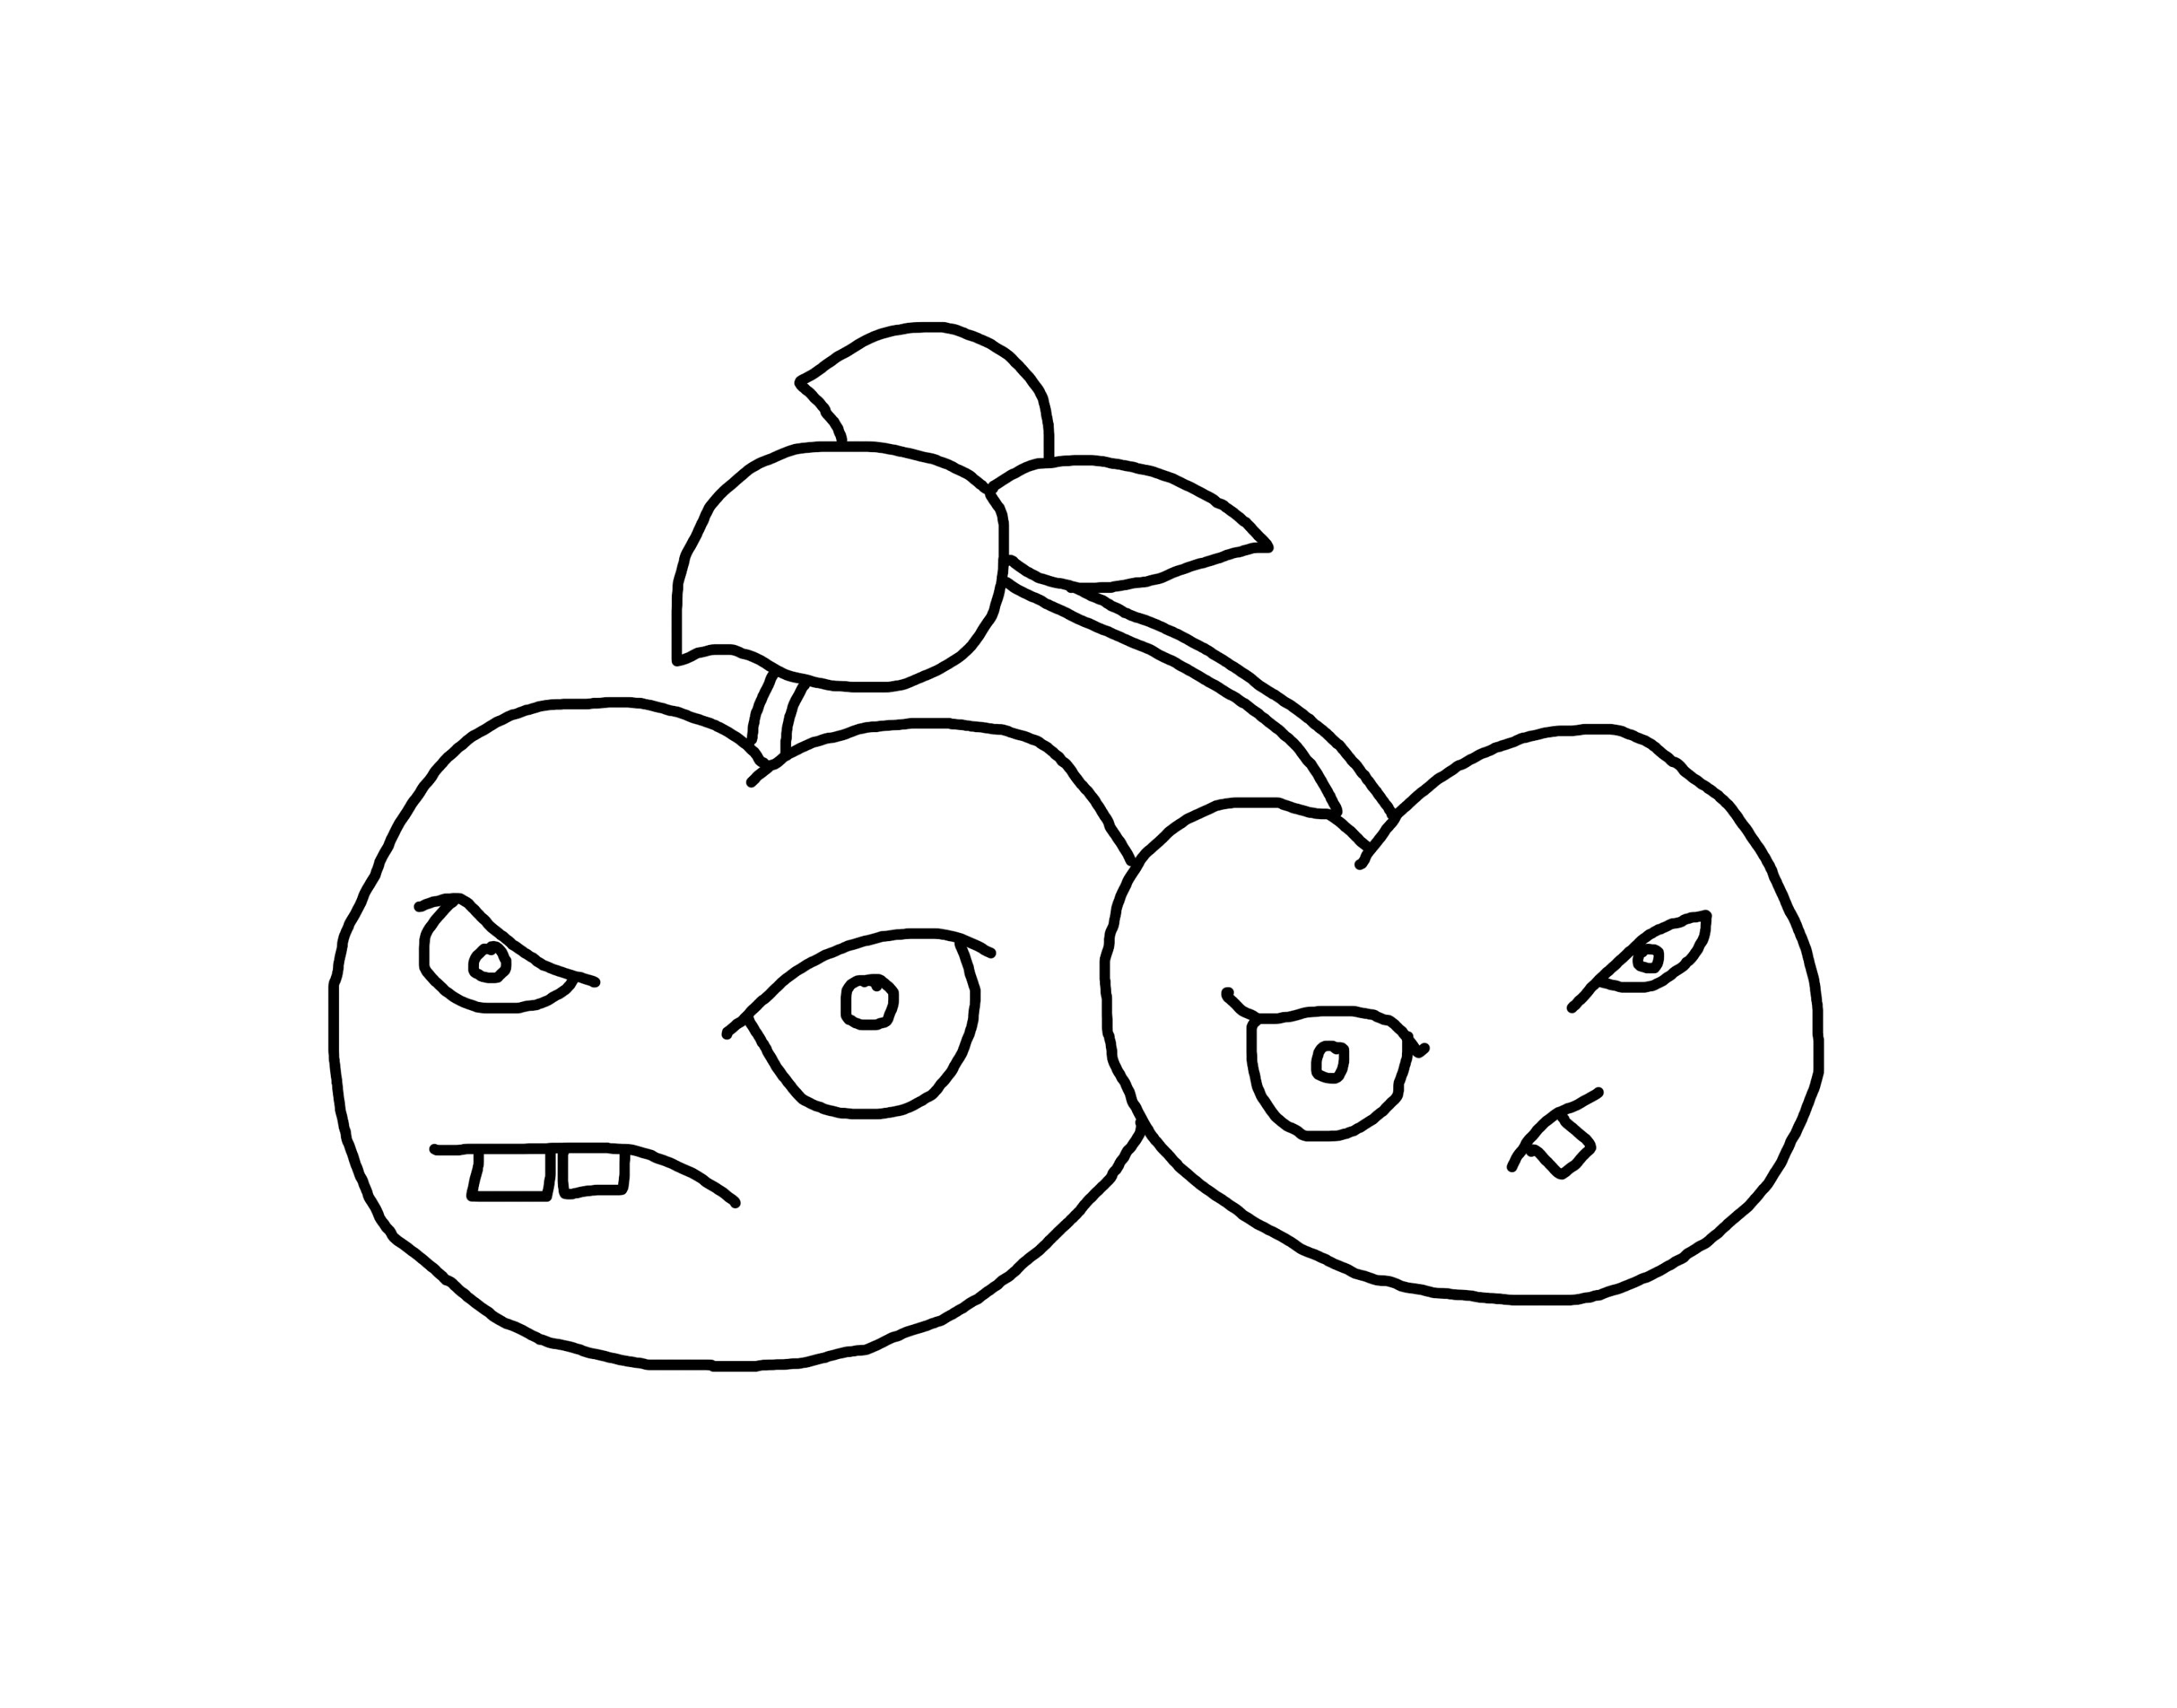 3000x2354 Cherry Bomb Plants Vs Zombies 2 How To Draw A Easy